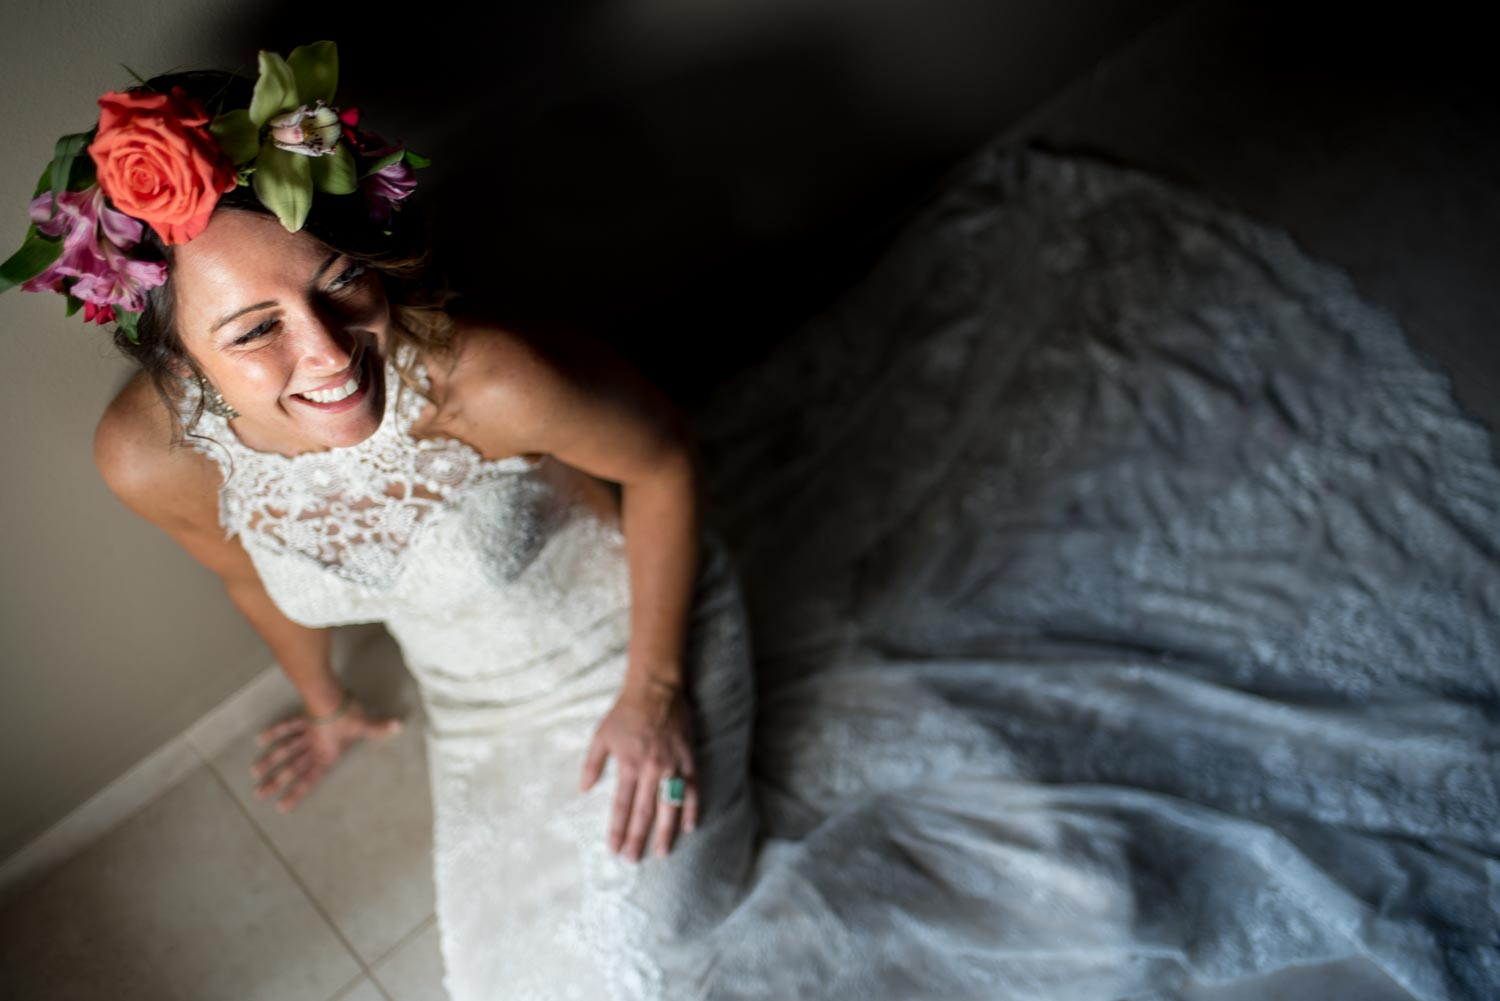 Bride sitting on the ground wearing a white wedding dress and tropical flower crown